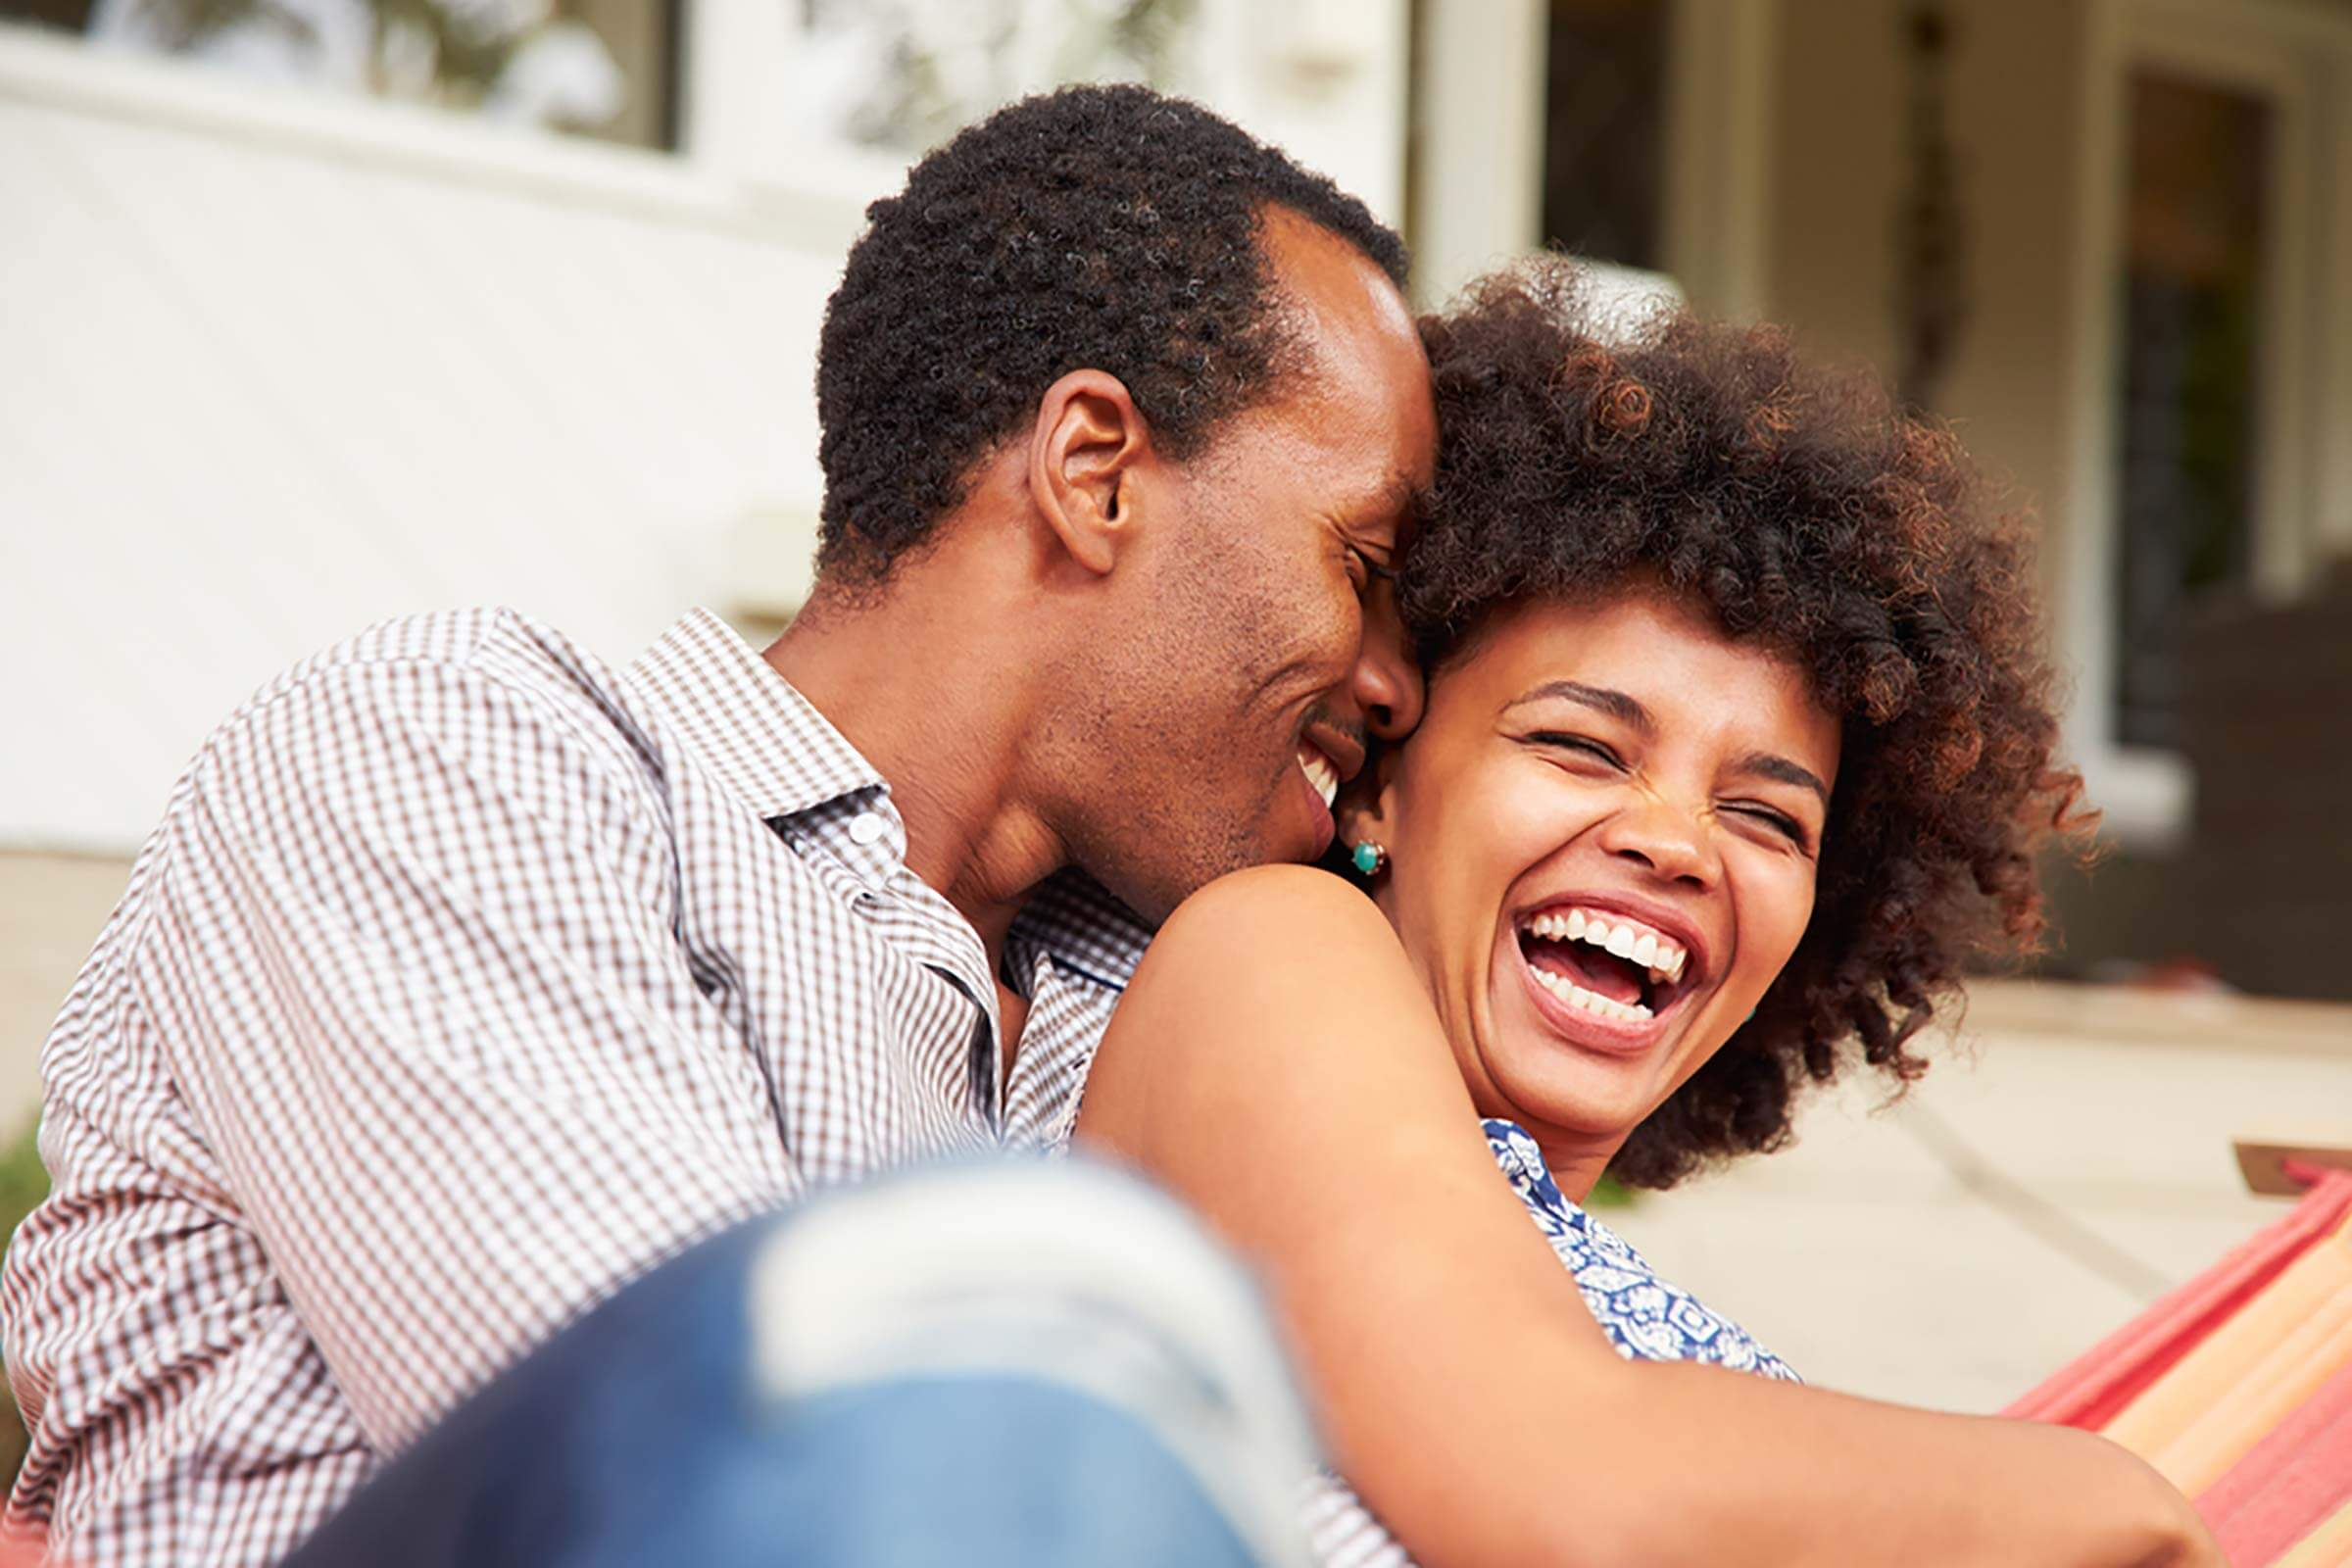 The Heathy Way to Advocate for Love